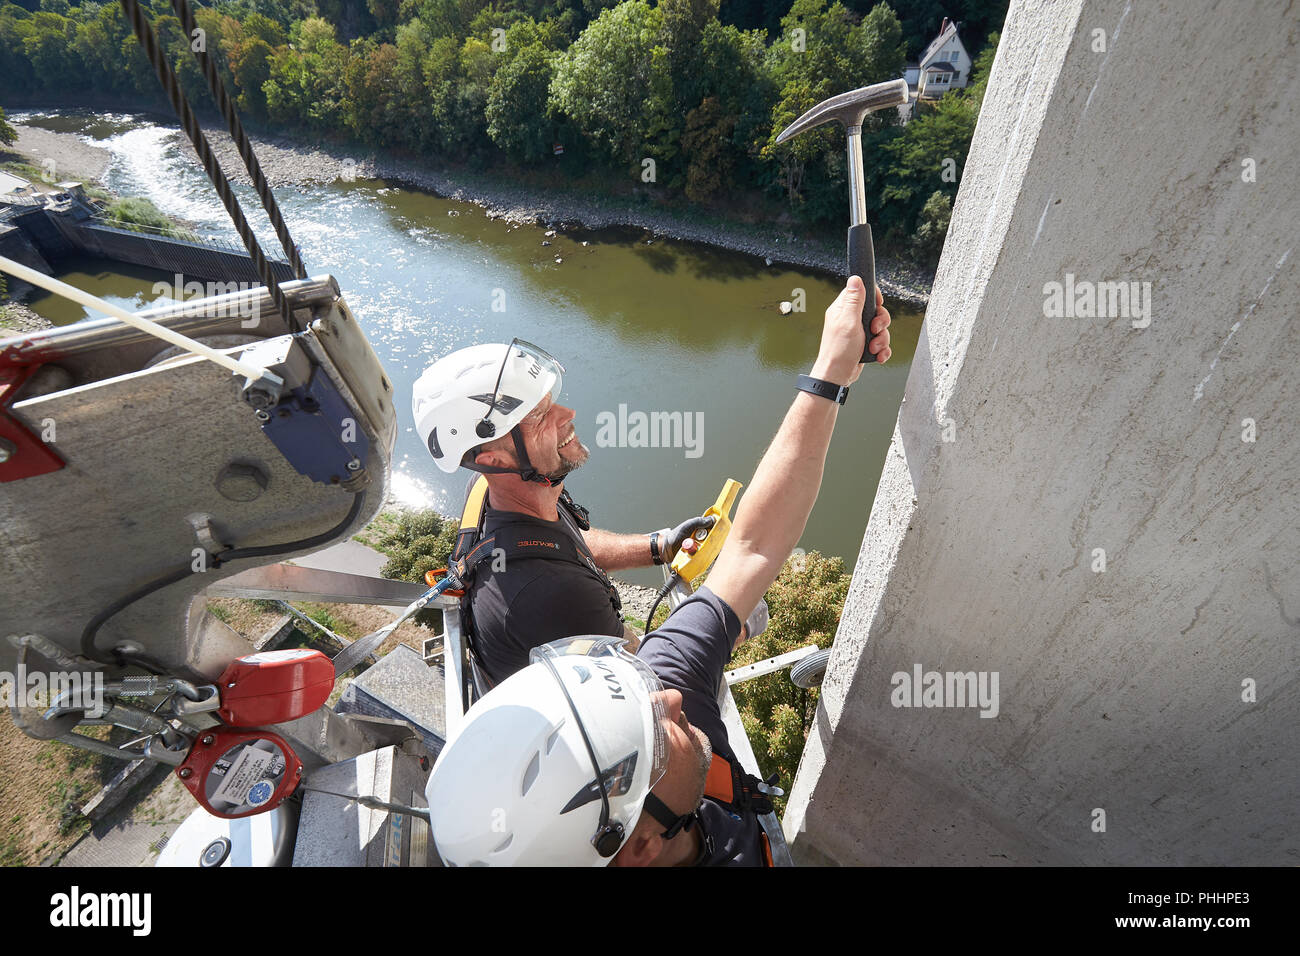 Lahnstein, Germany. 22nd Aug, 2018. 22.08.2018, Rhineland-Palatinate, Lahnstein: The bridge inspectors Frank Zerwas (l) and Christian Maximini check with a hammer the concrete surface of a pillar of the Lahn Valley Bridge on the B 42. Many German bridges date from the sixties and seventies, many are in need of rehabilitation today. (to dpa ''Bridge woodpeckers' hammer high up - regular bridge inspection' from 02.09.2018) Credit: Thomas Frey/dpa/Alamy Live News - Stock Image